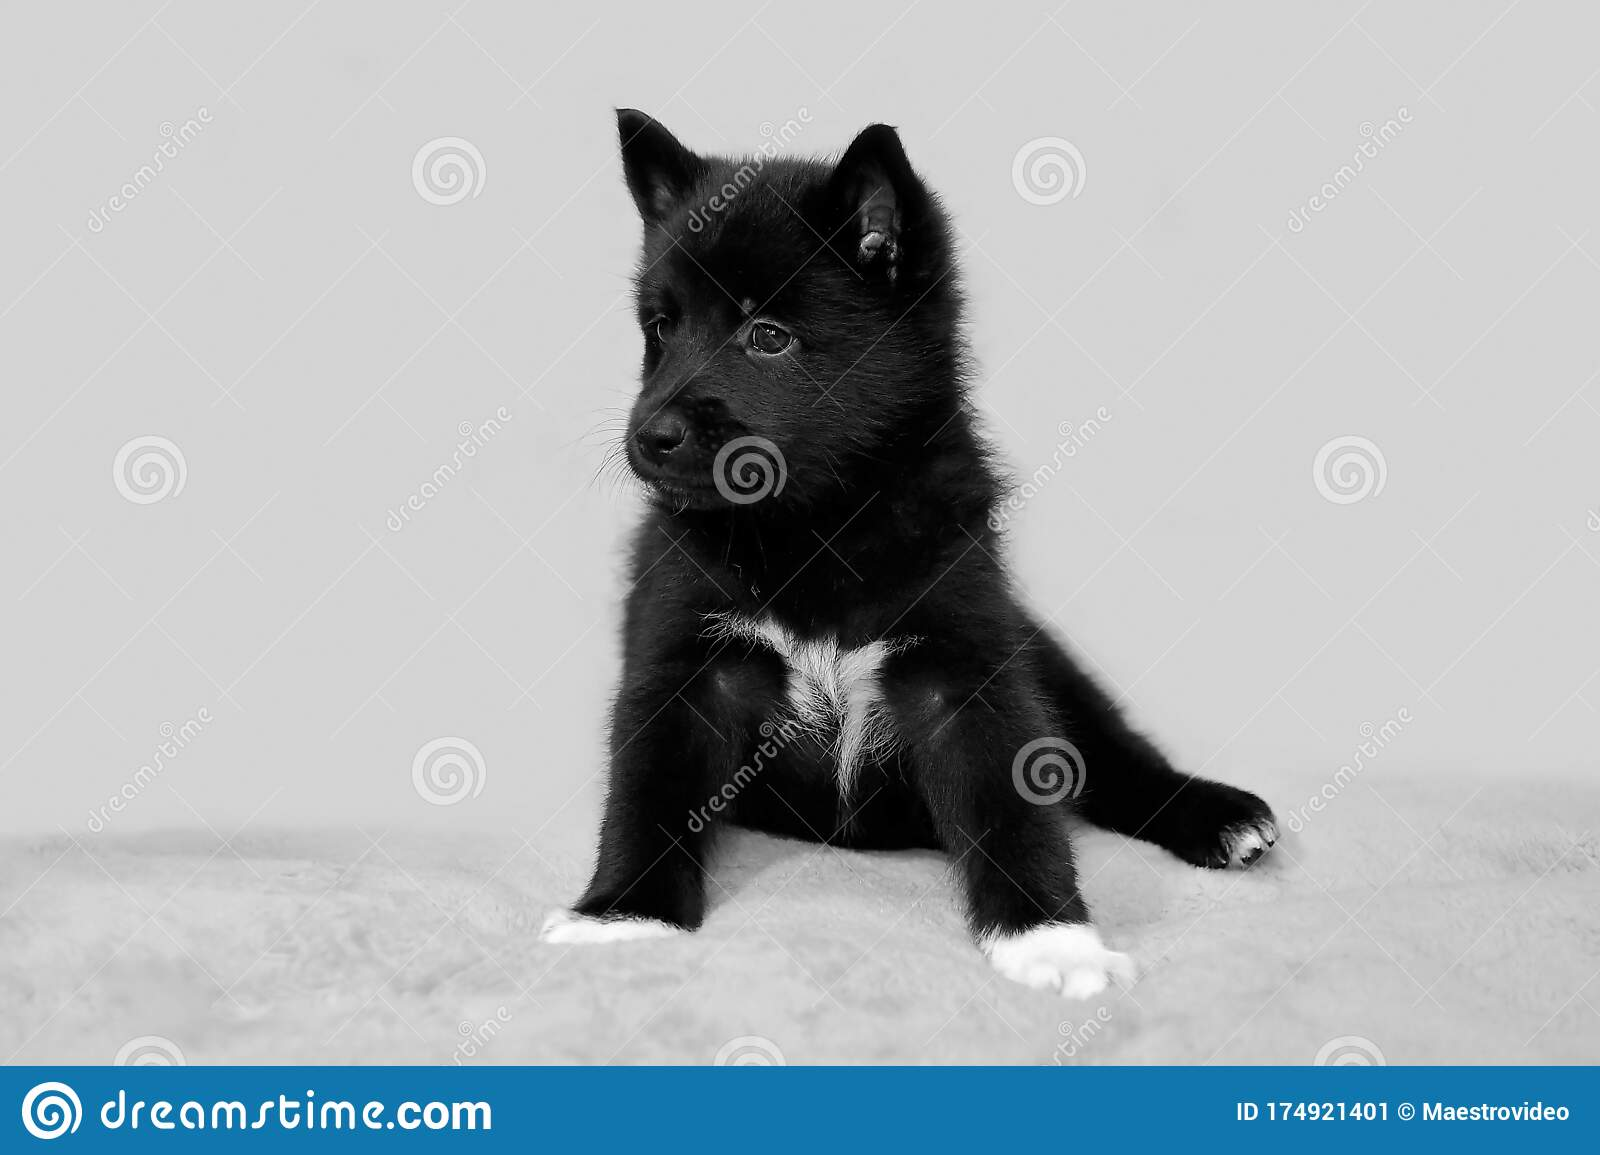 Cute Black Husky Puppy Stock Image Image Of Canine 174921401